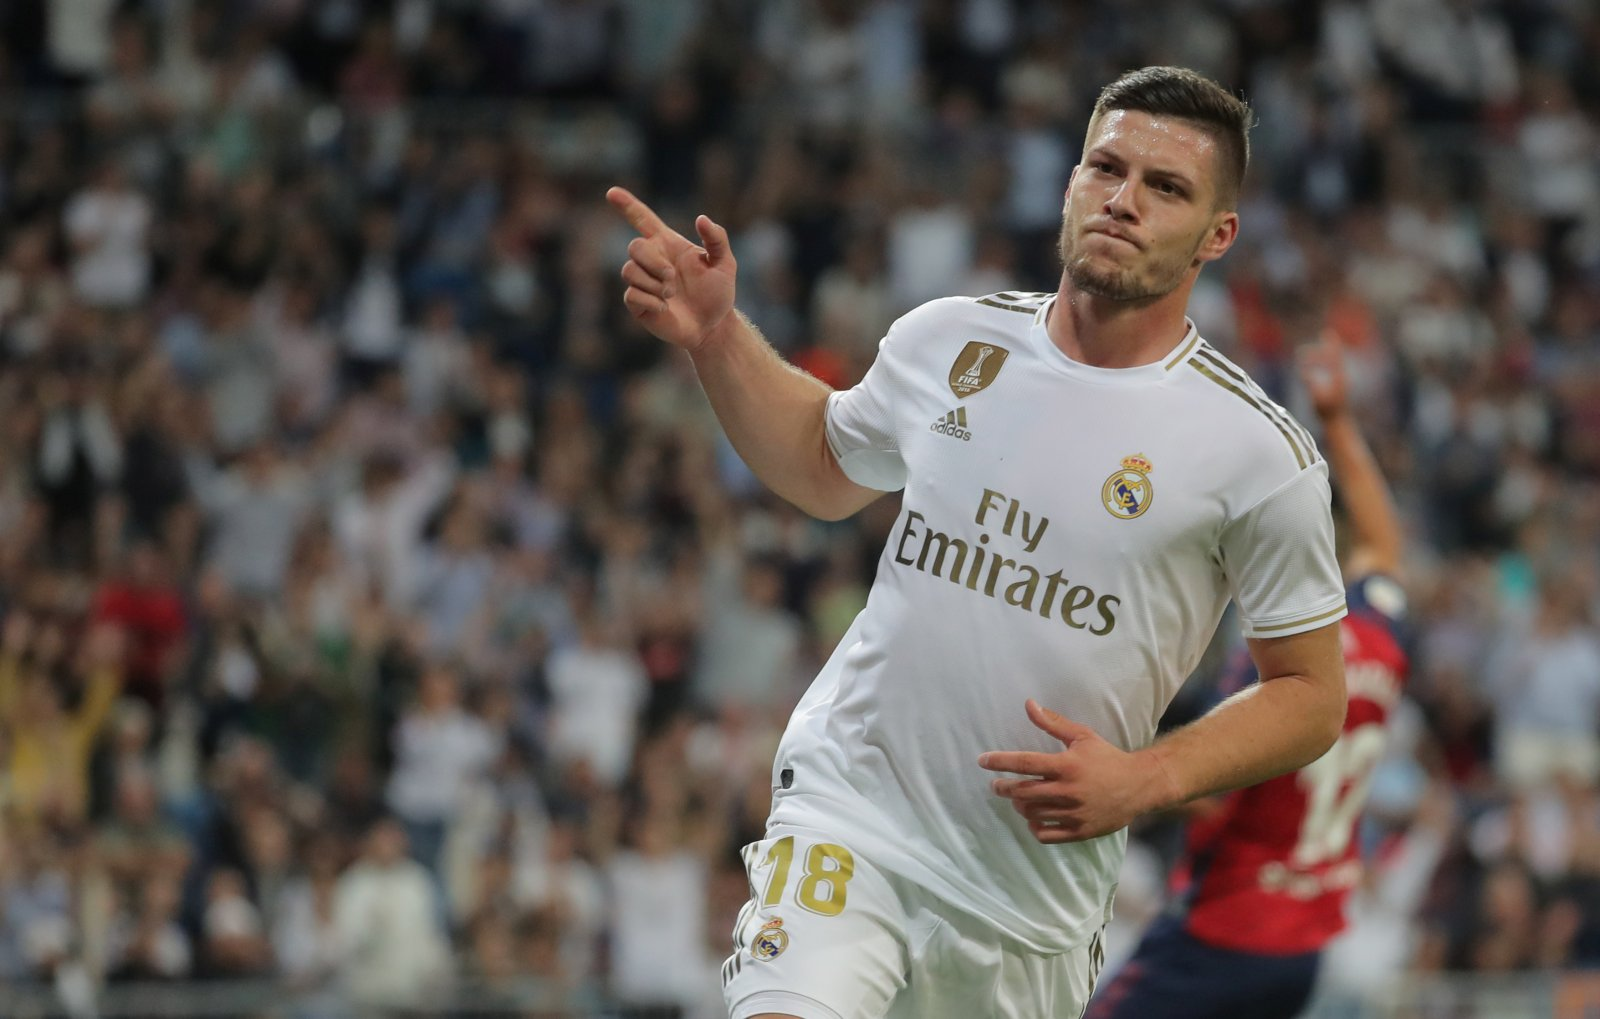 Jovic, Lucas Vazquez and 2 other players: Milan reportedly eyeing raid on Real Madrid - Bóng Đá